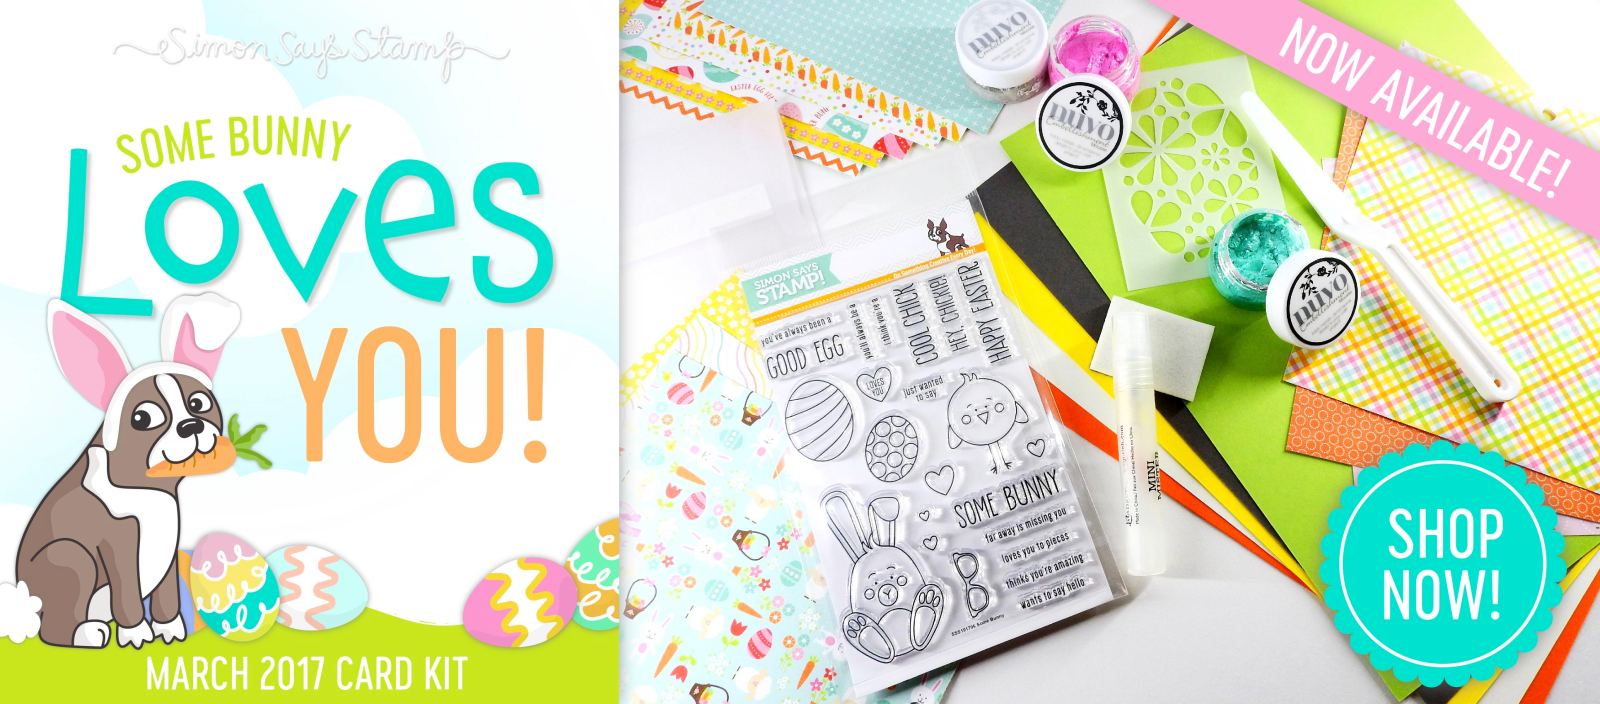 Some Bunny Loves You Simon Says Stamp March 2017 Card Kit   Nina-Marie Design